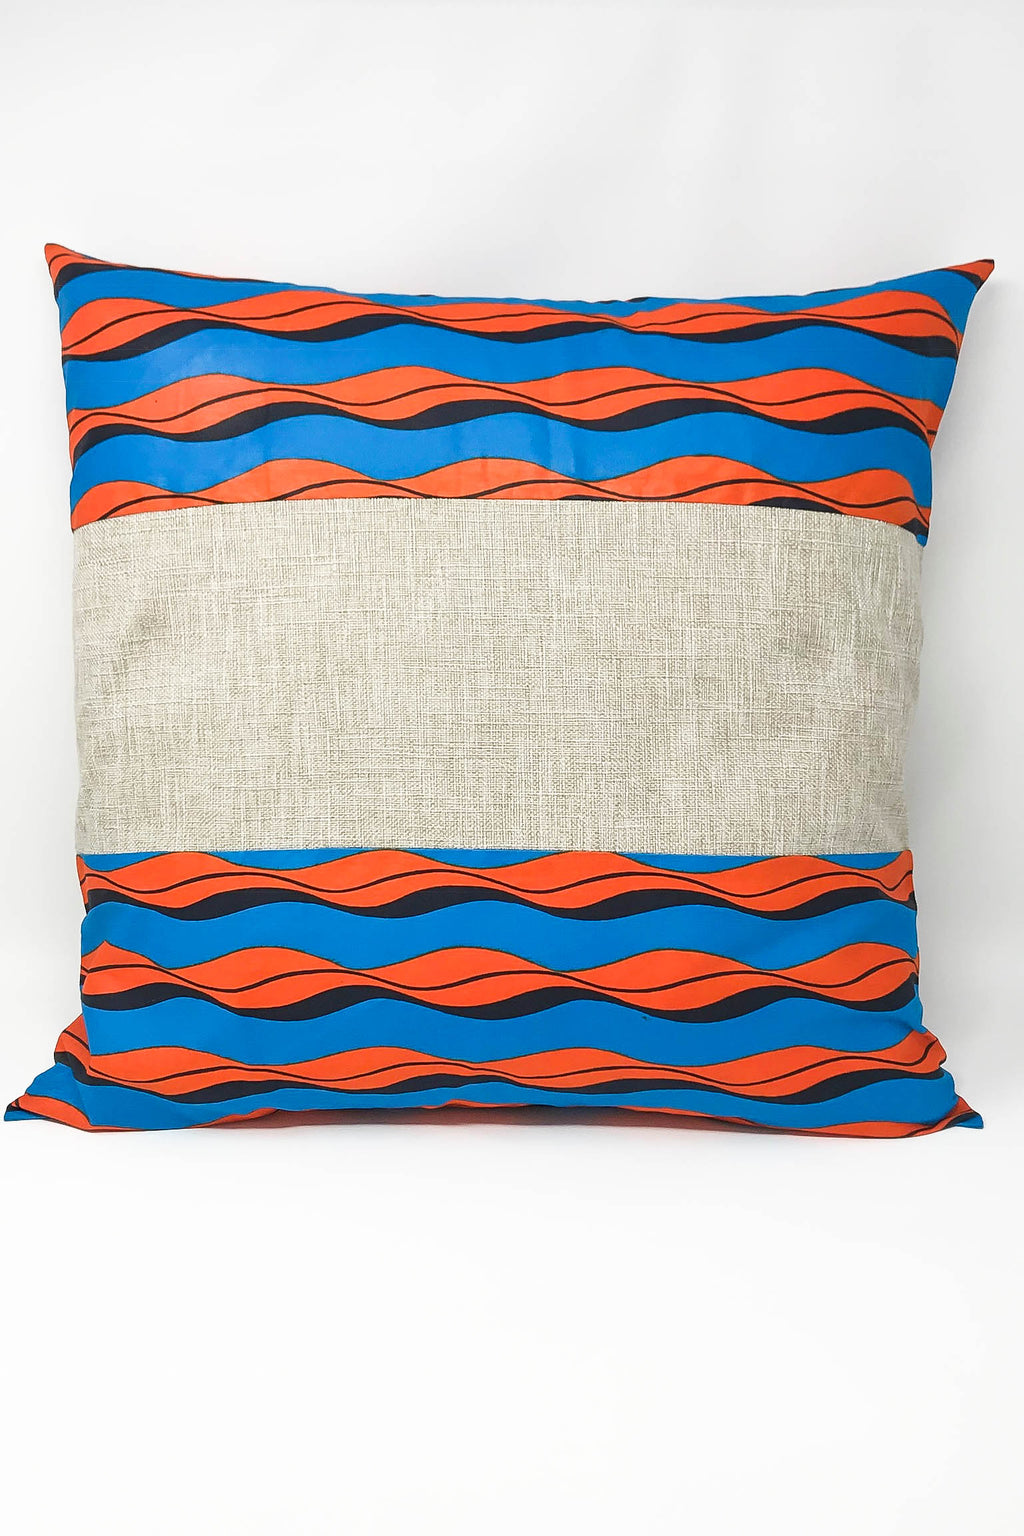 Amahoro Pillow Cover